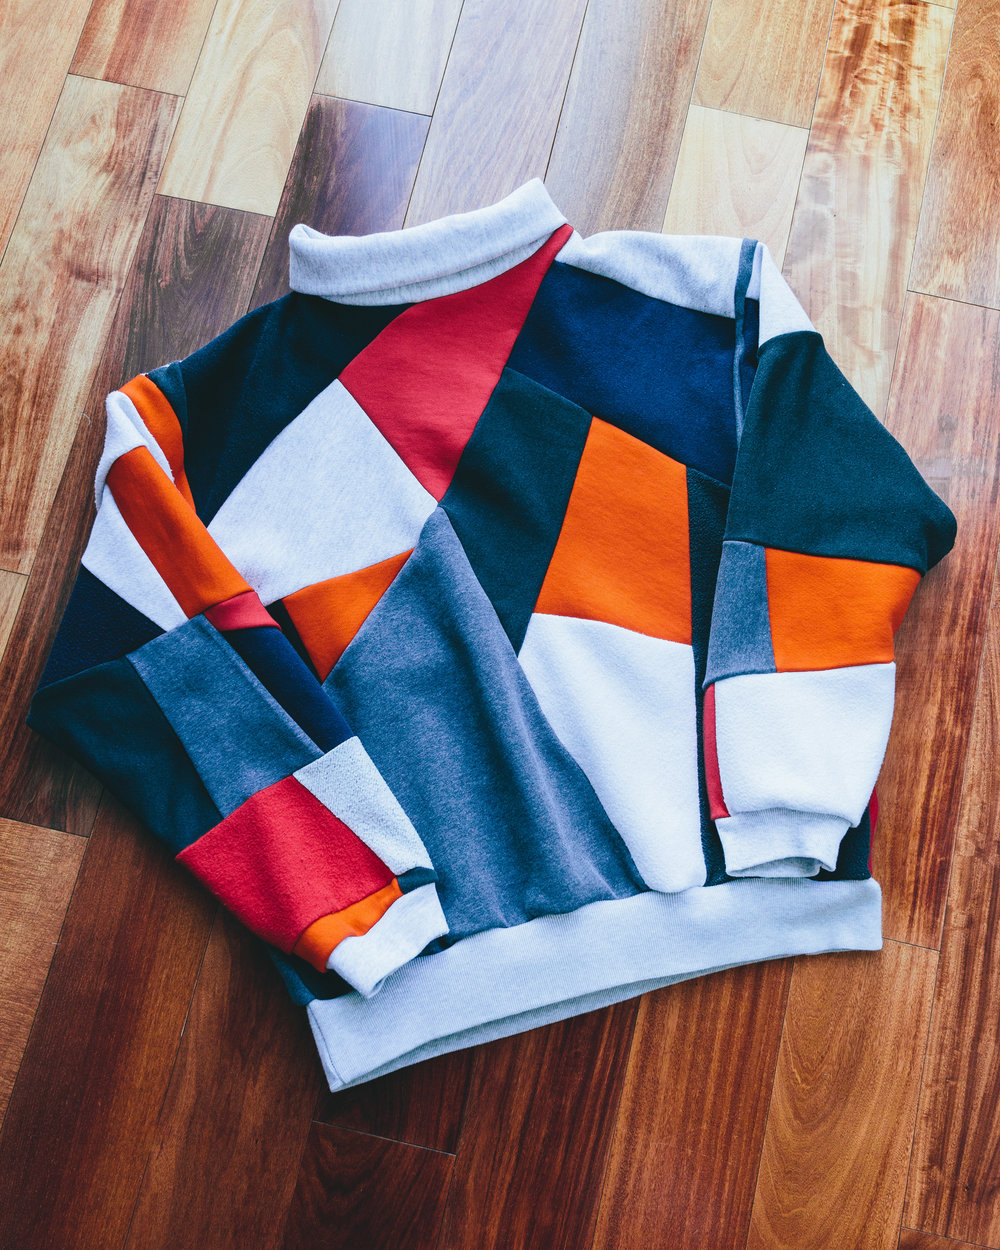 Mosaic Turtleneck - Made from various vintage sweatshirts patchworked together.